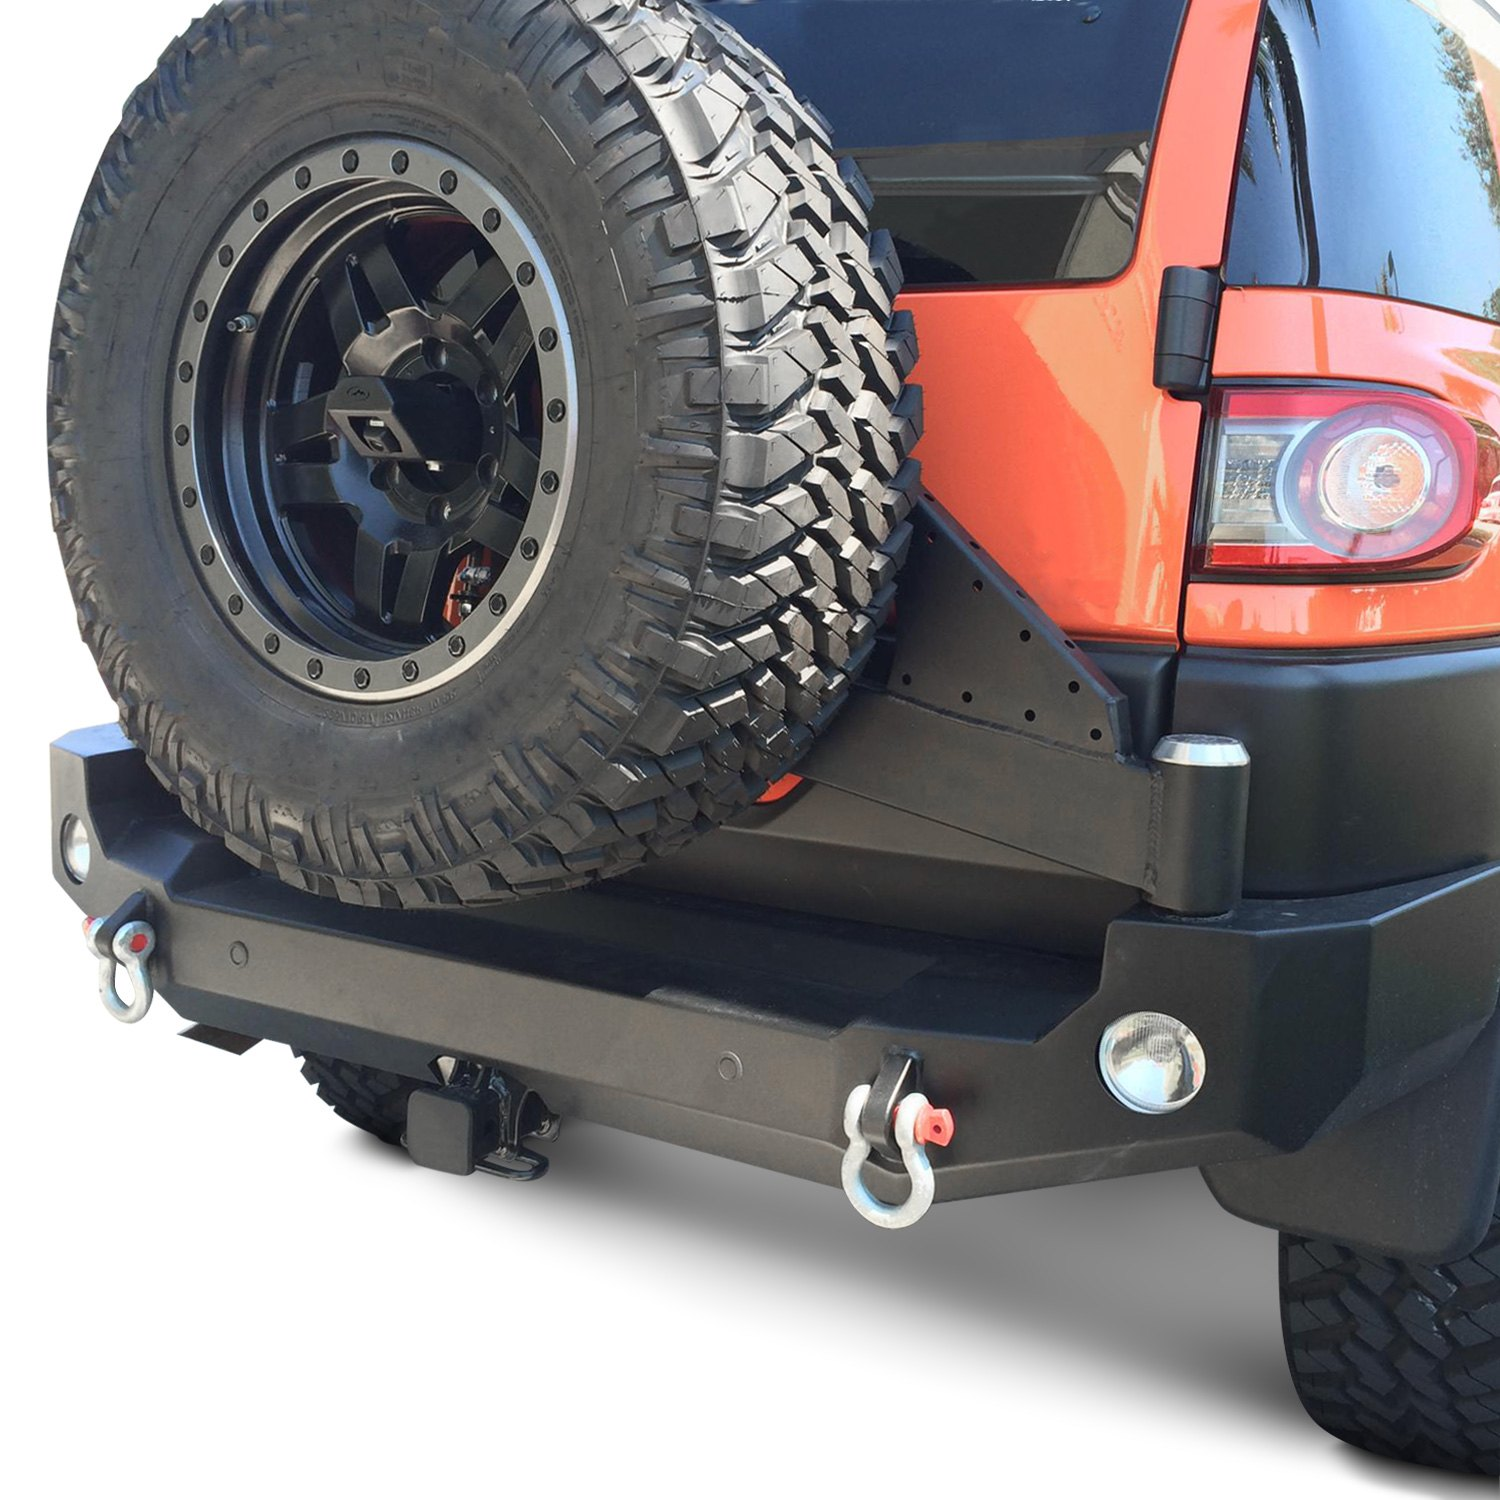 Expedition One Bumper Fj Cruiser : Expedition one toyota fj cruiser  trail series